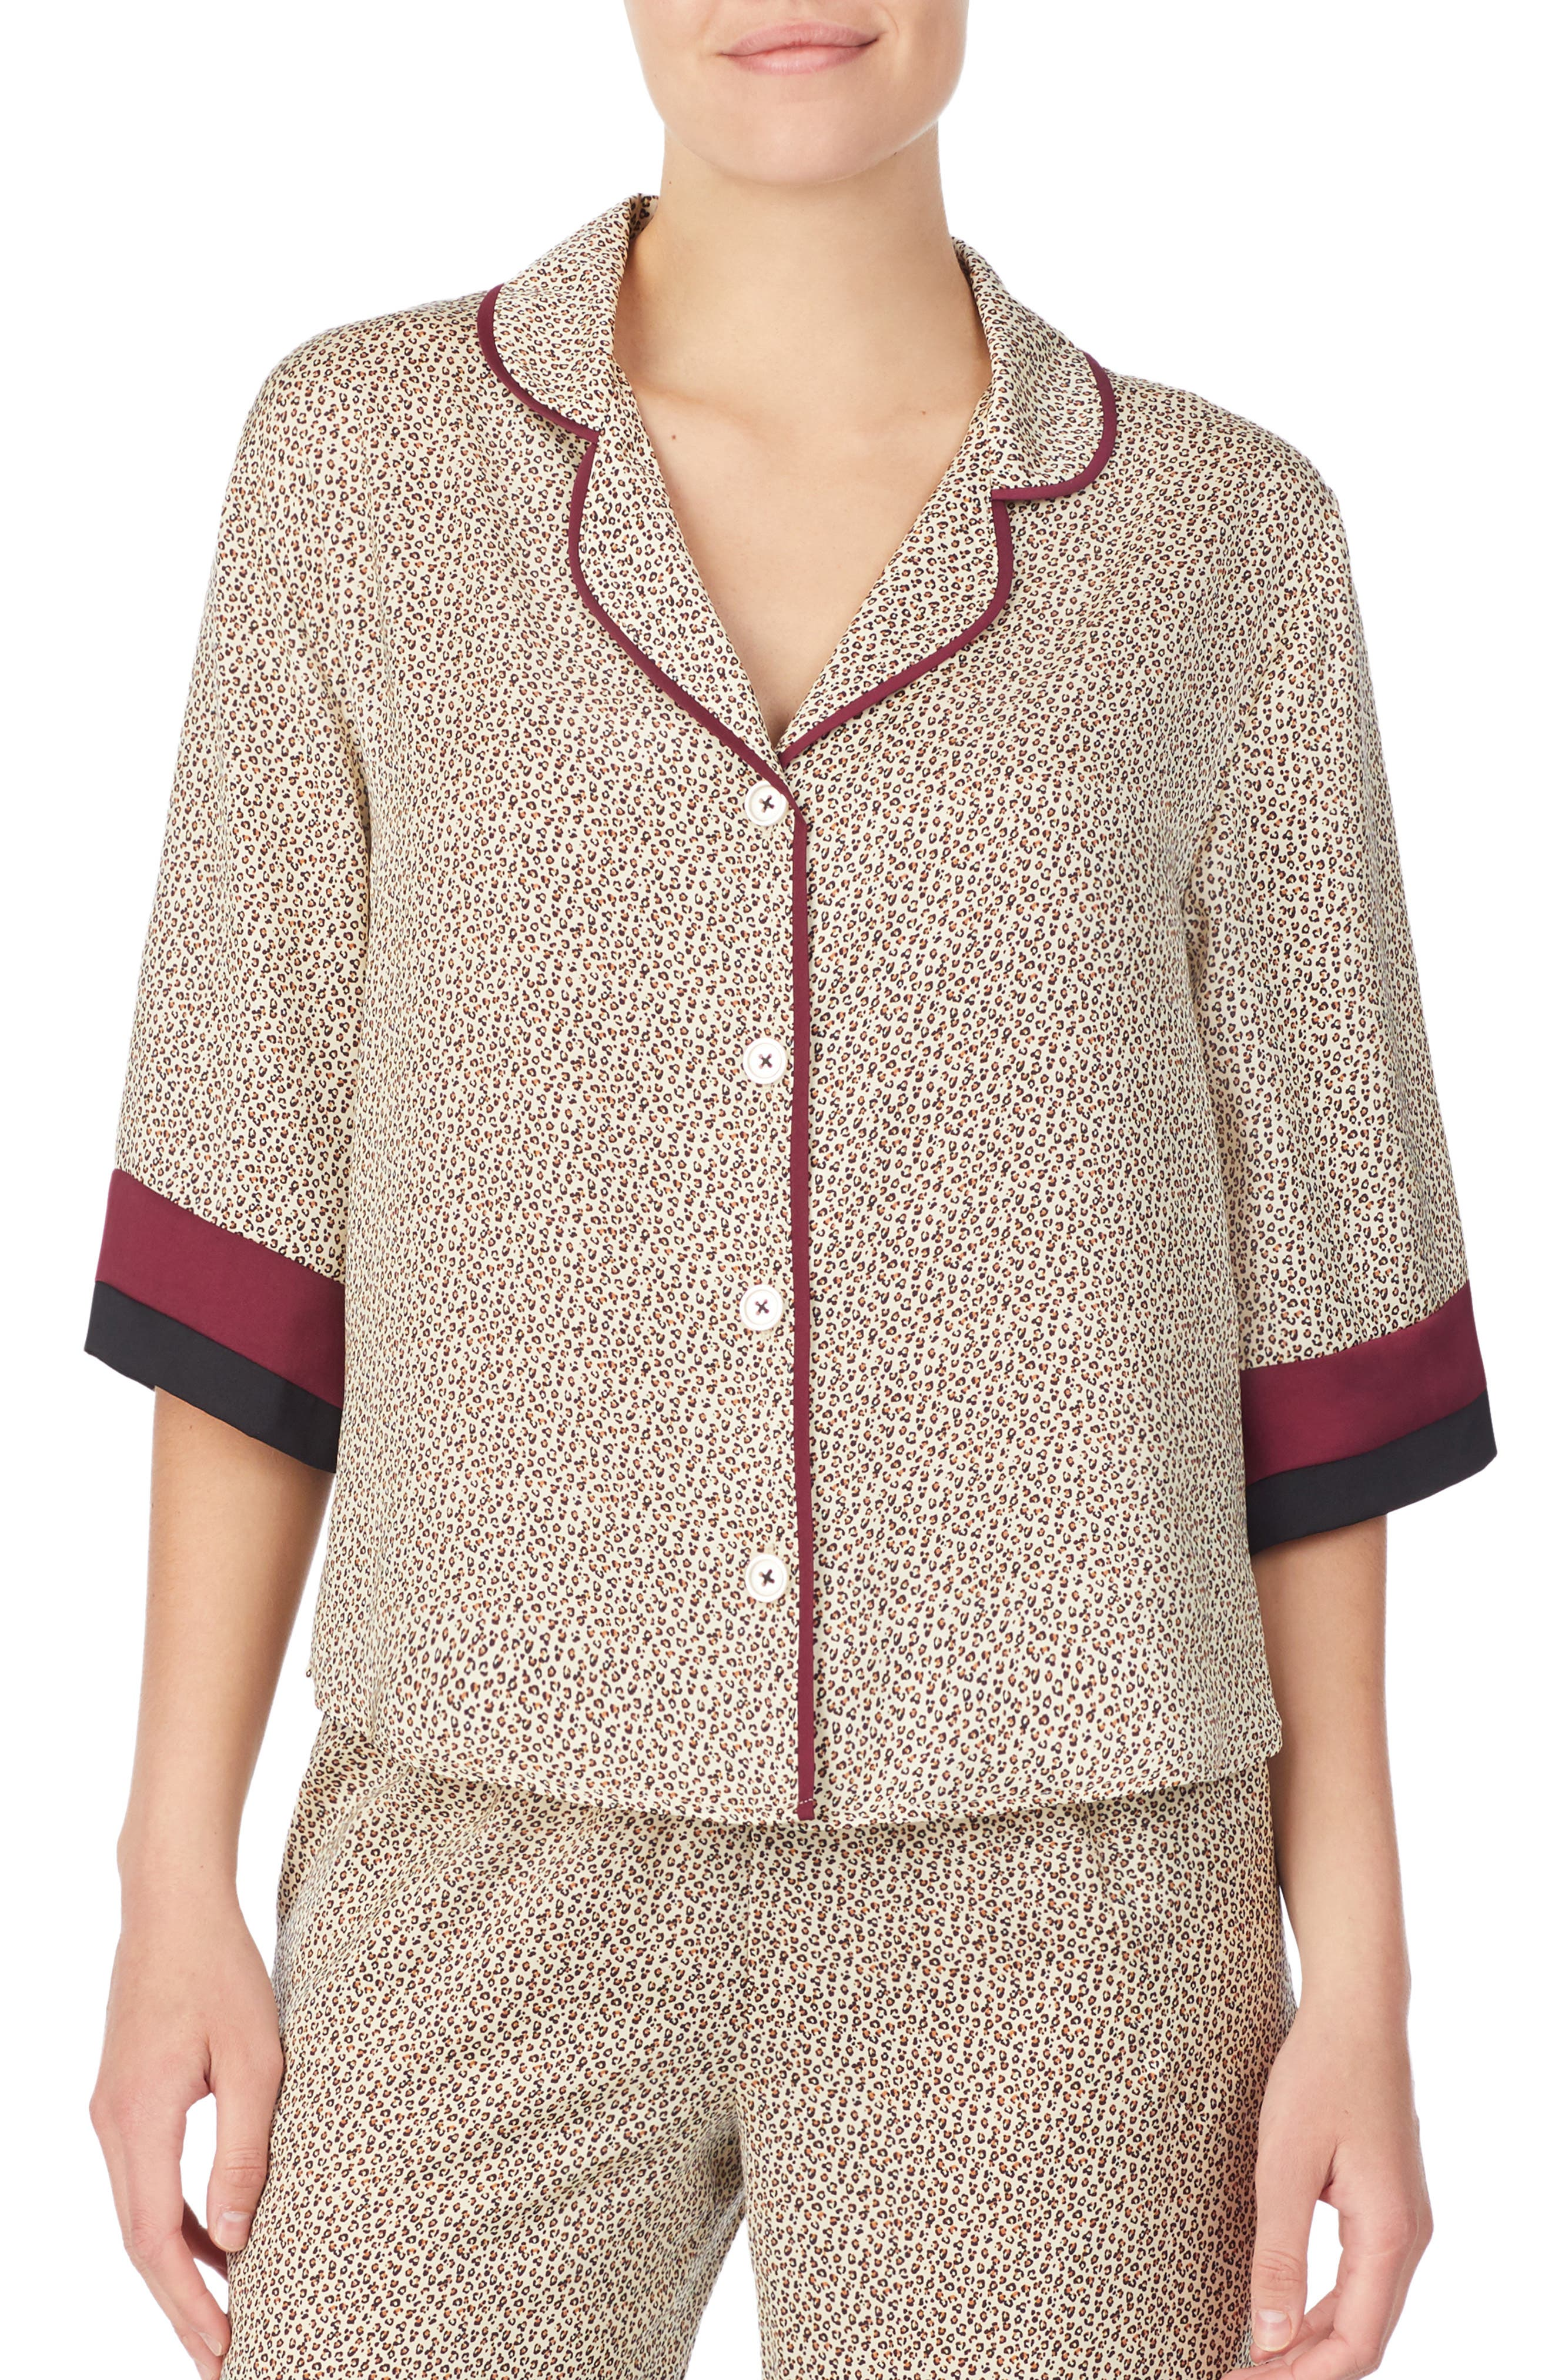 Room Service Pajama Top, Brown (Nordstrom Exclusive)